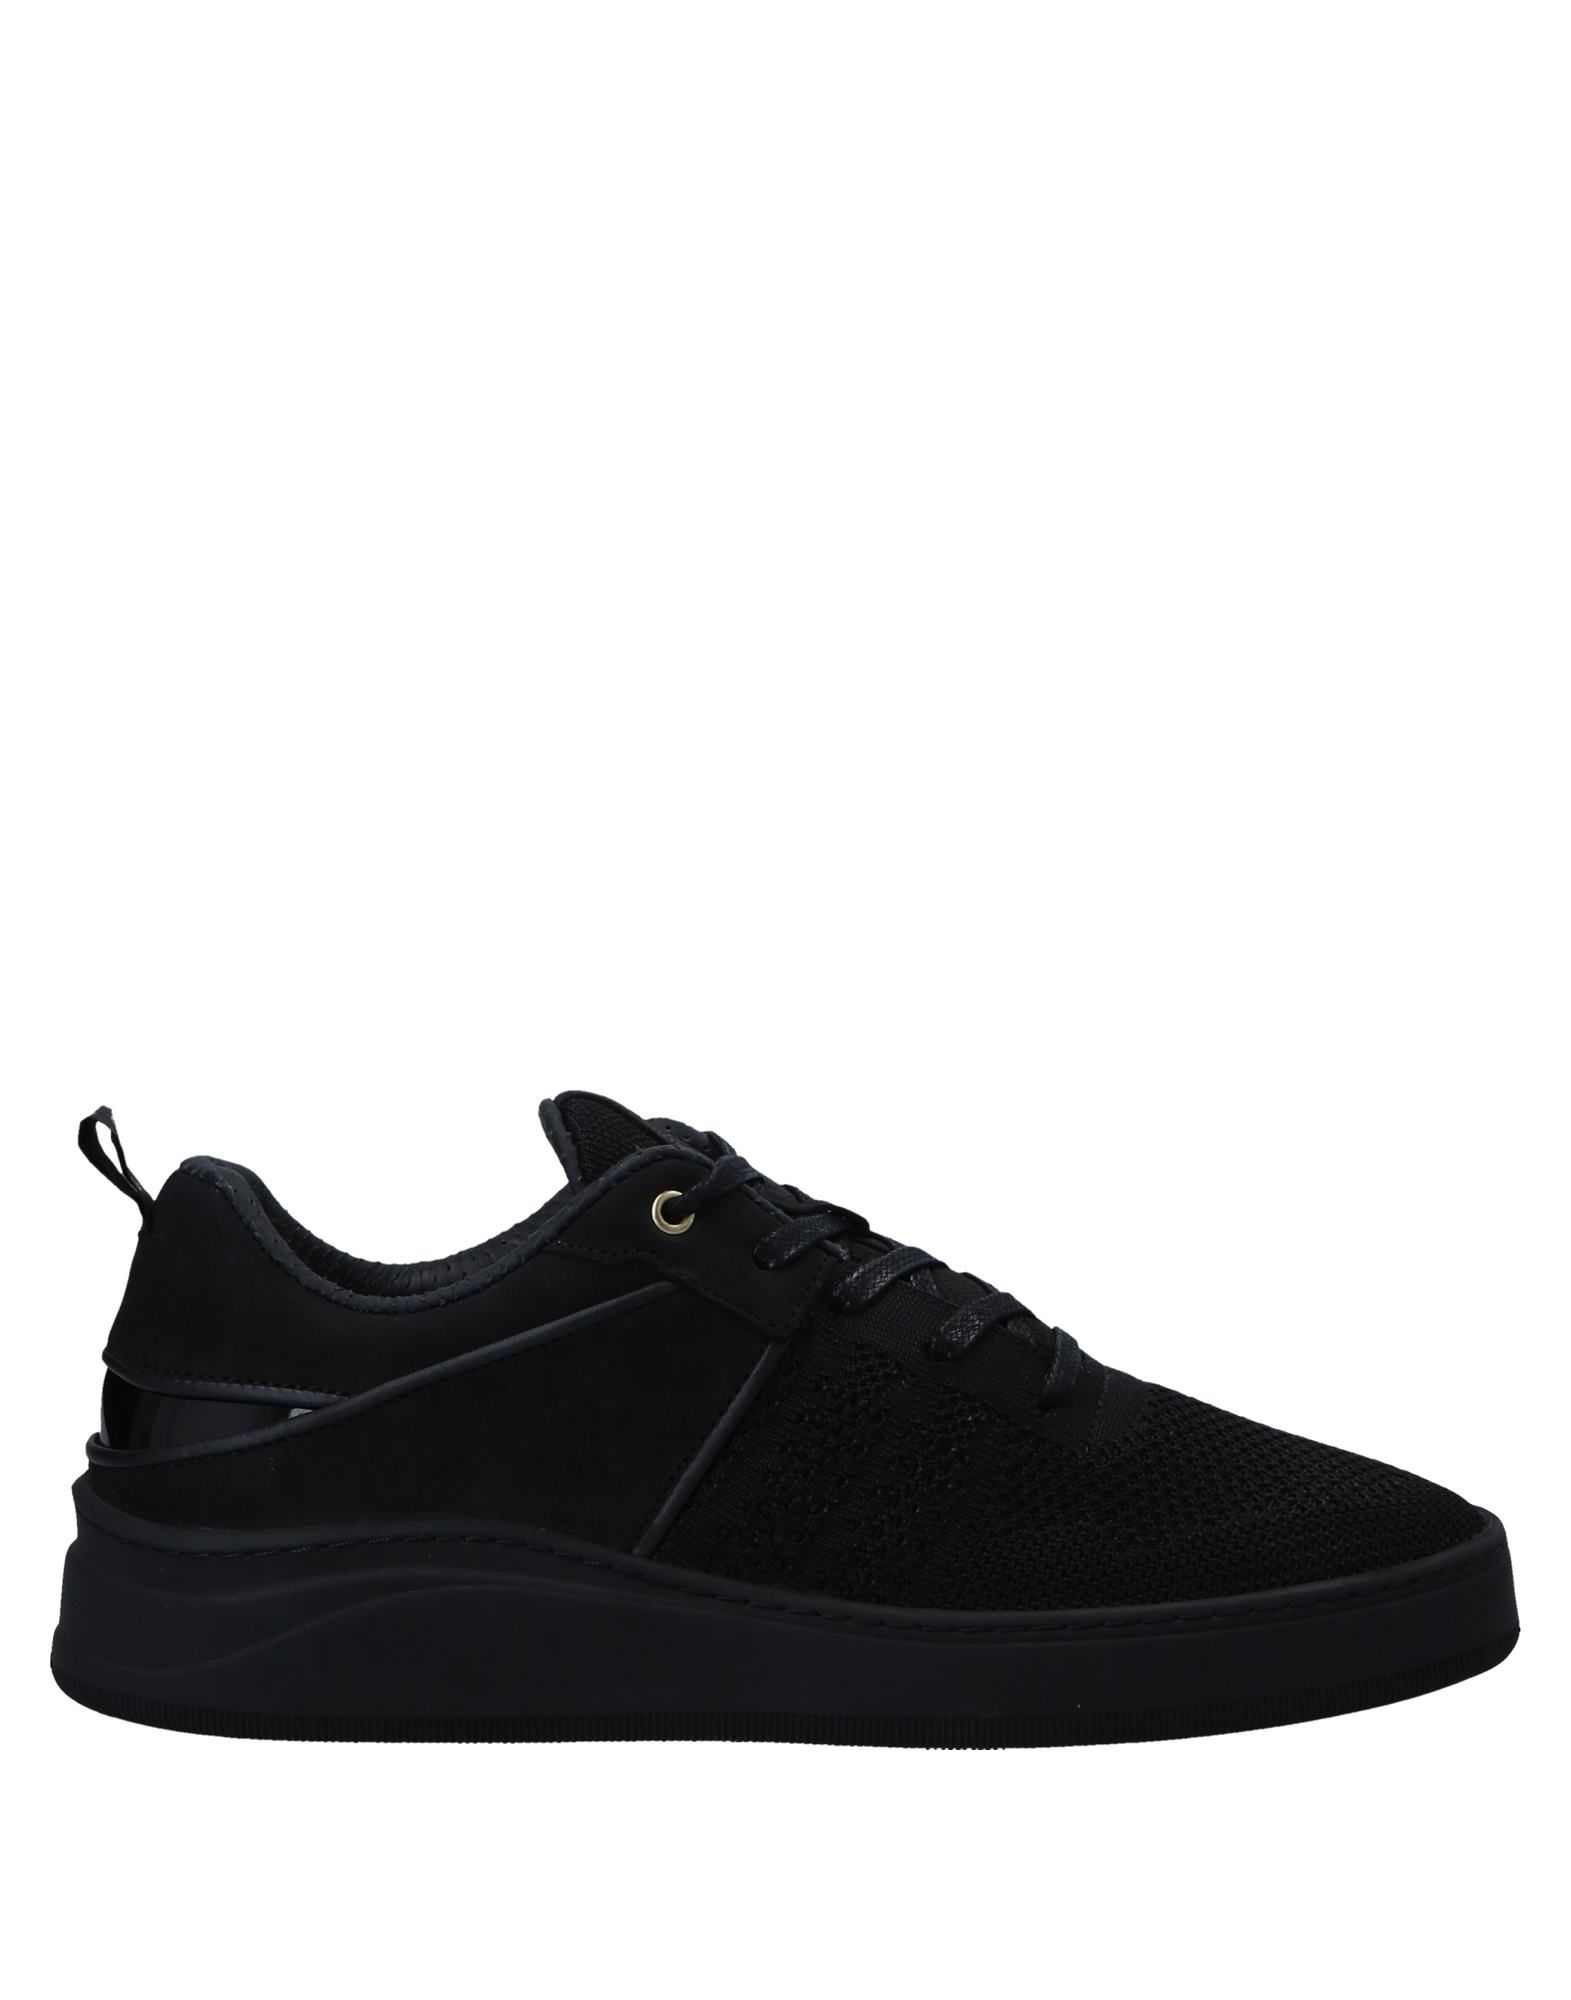 Mercer Amsterdam Sneakers - Men on Mercer Amsterdam Sneakers online on Men  Canada - 11558768PI dfe9d3